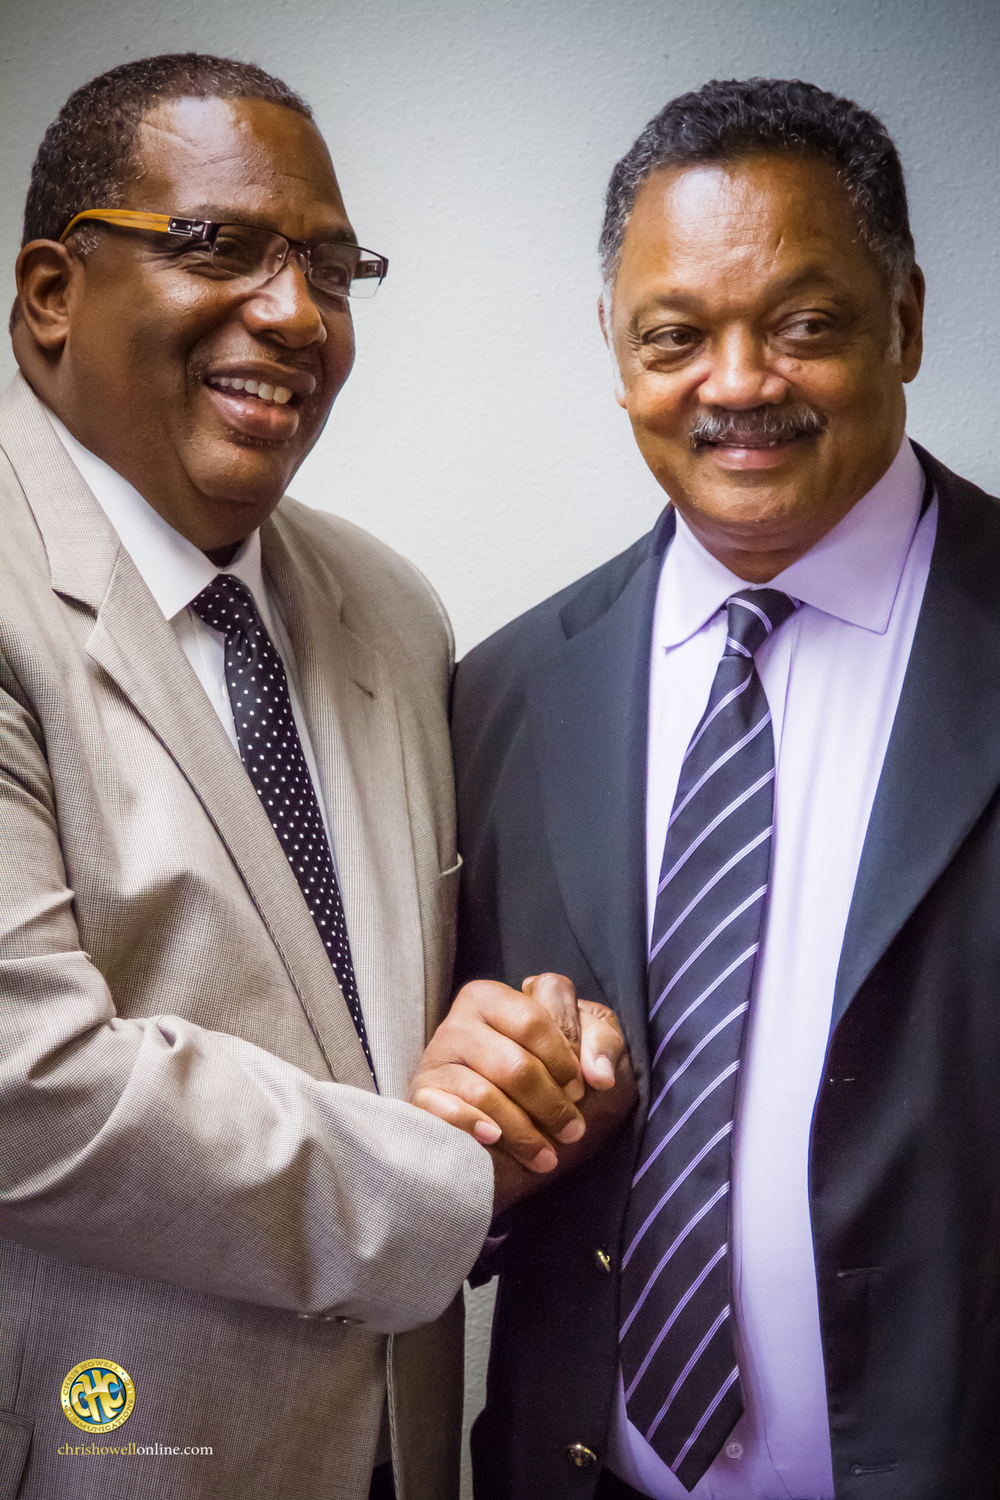 4022_CHC_Jesse_Jackson_at_Paul_Quinn_College.jpg